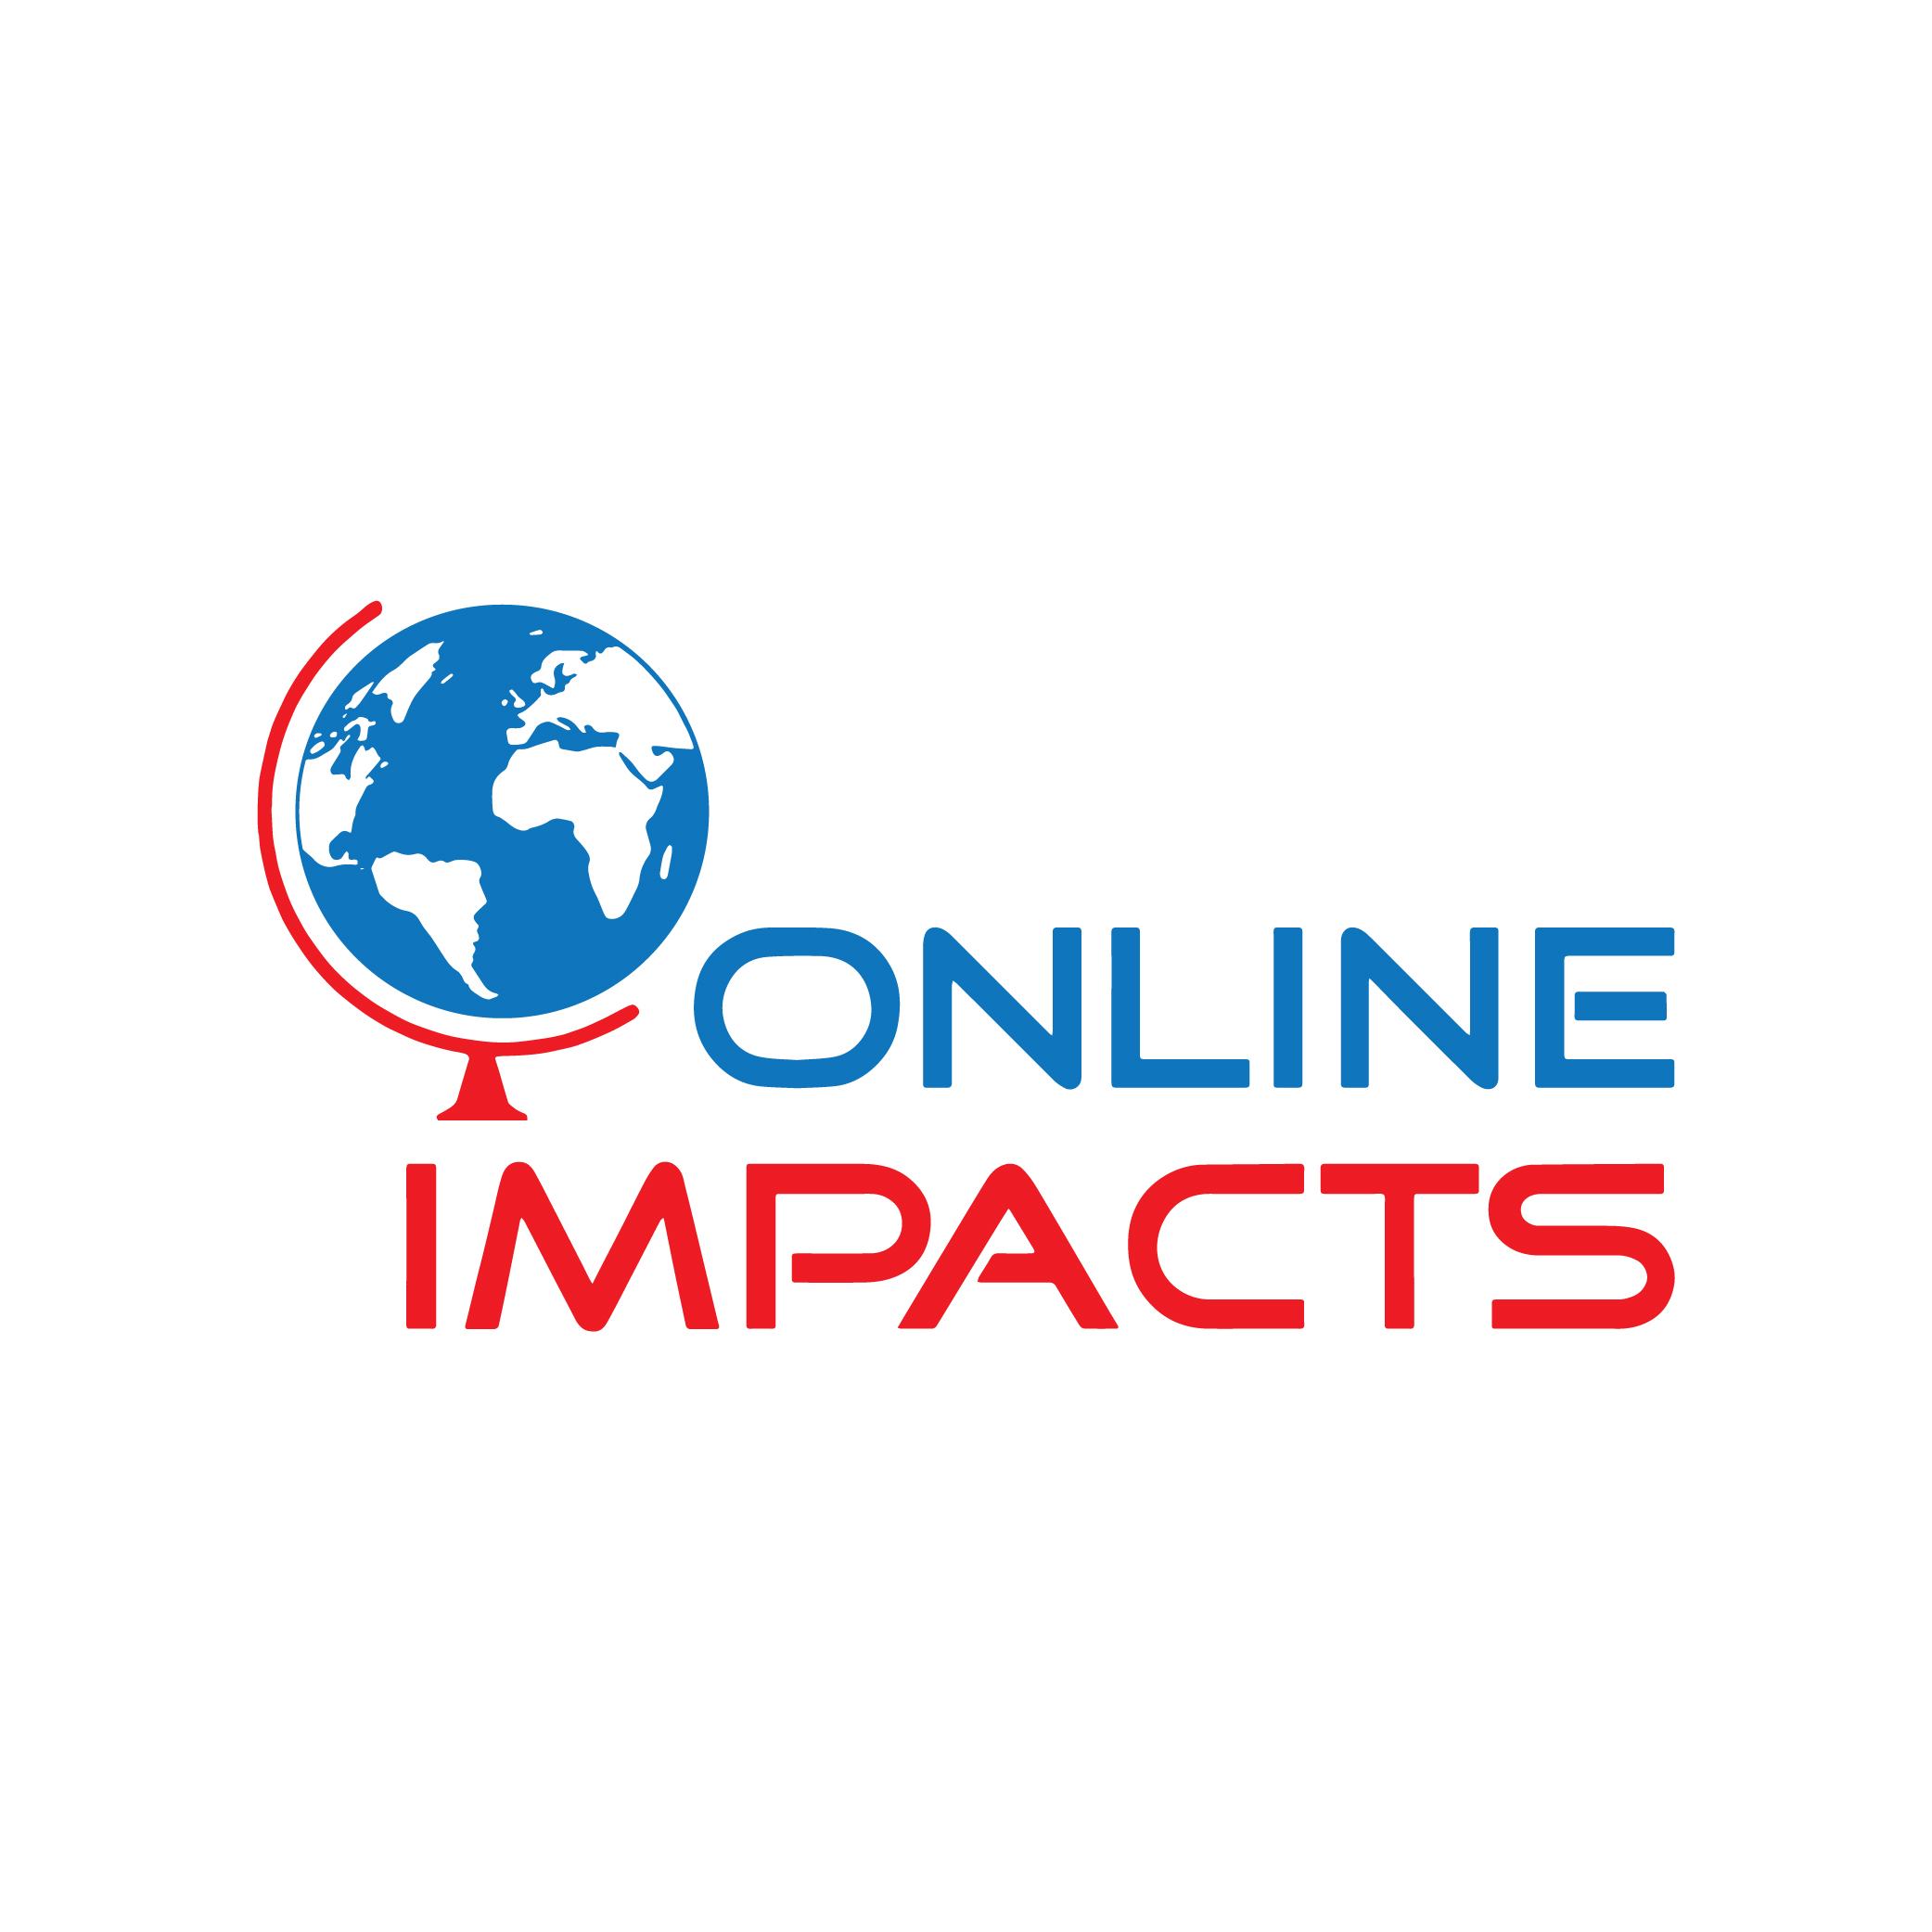 Online Impacts Sees reputation Rise After Offering Digital Marketing Services to Non-Profits For Free